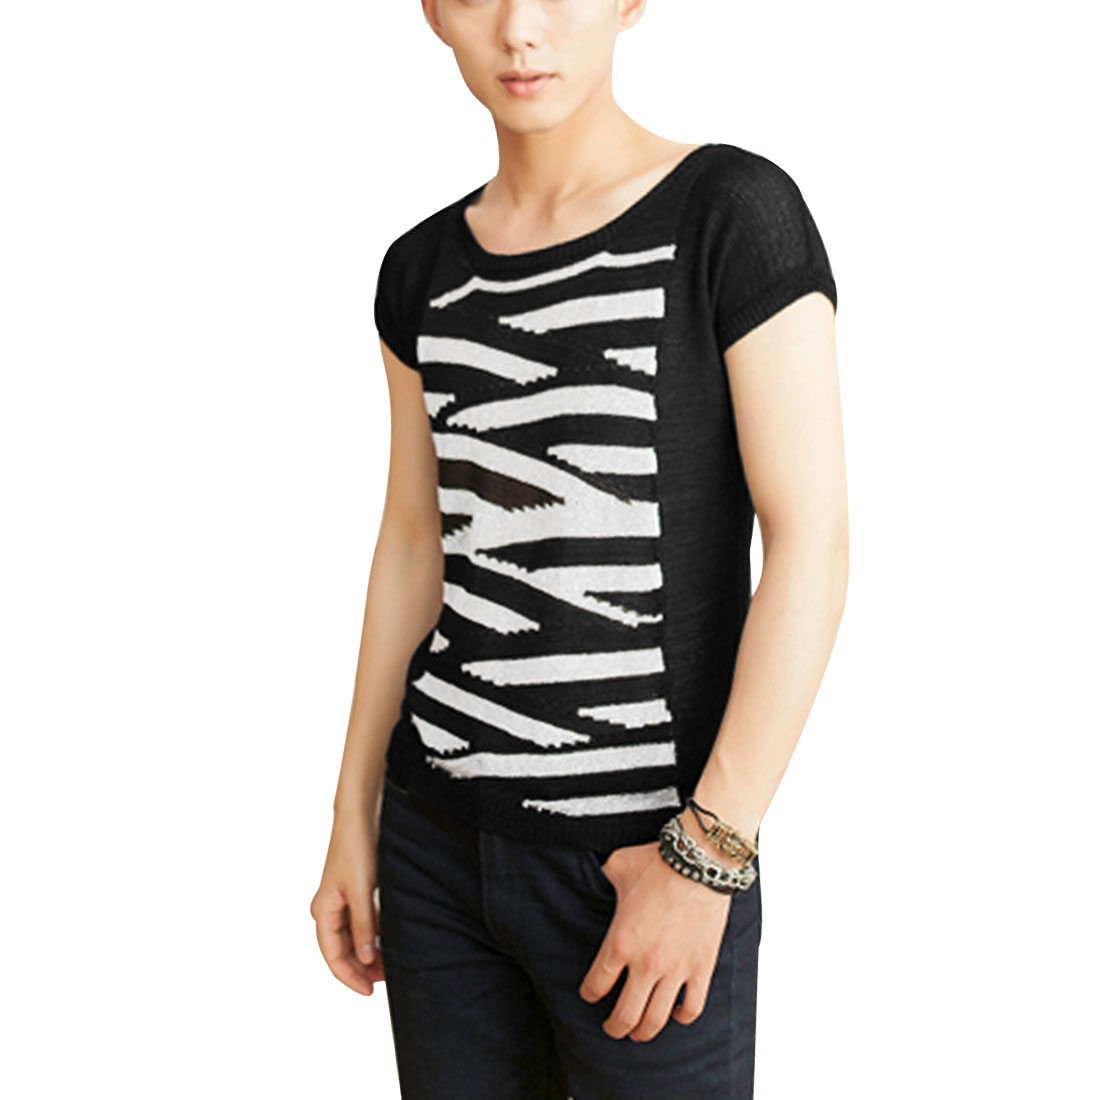 Mens Round Neck Short Sleeve Stripes Design Silver Tone Black Knitted Top M